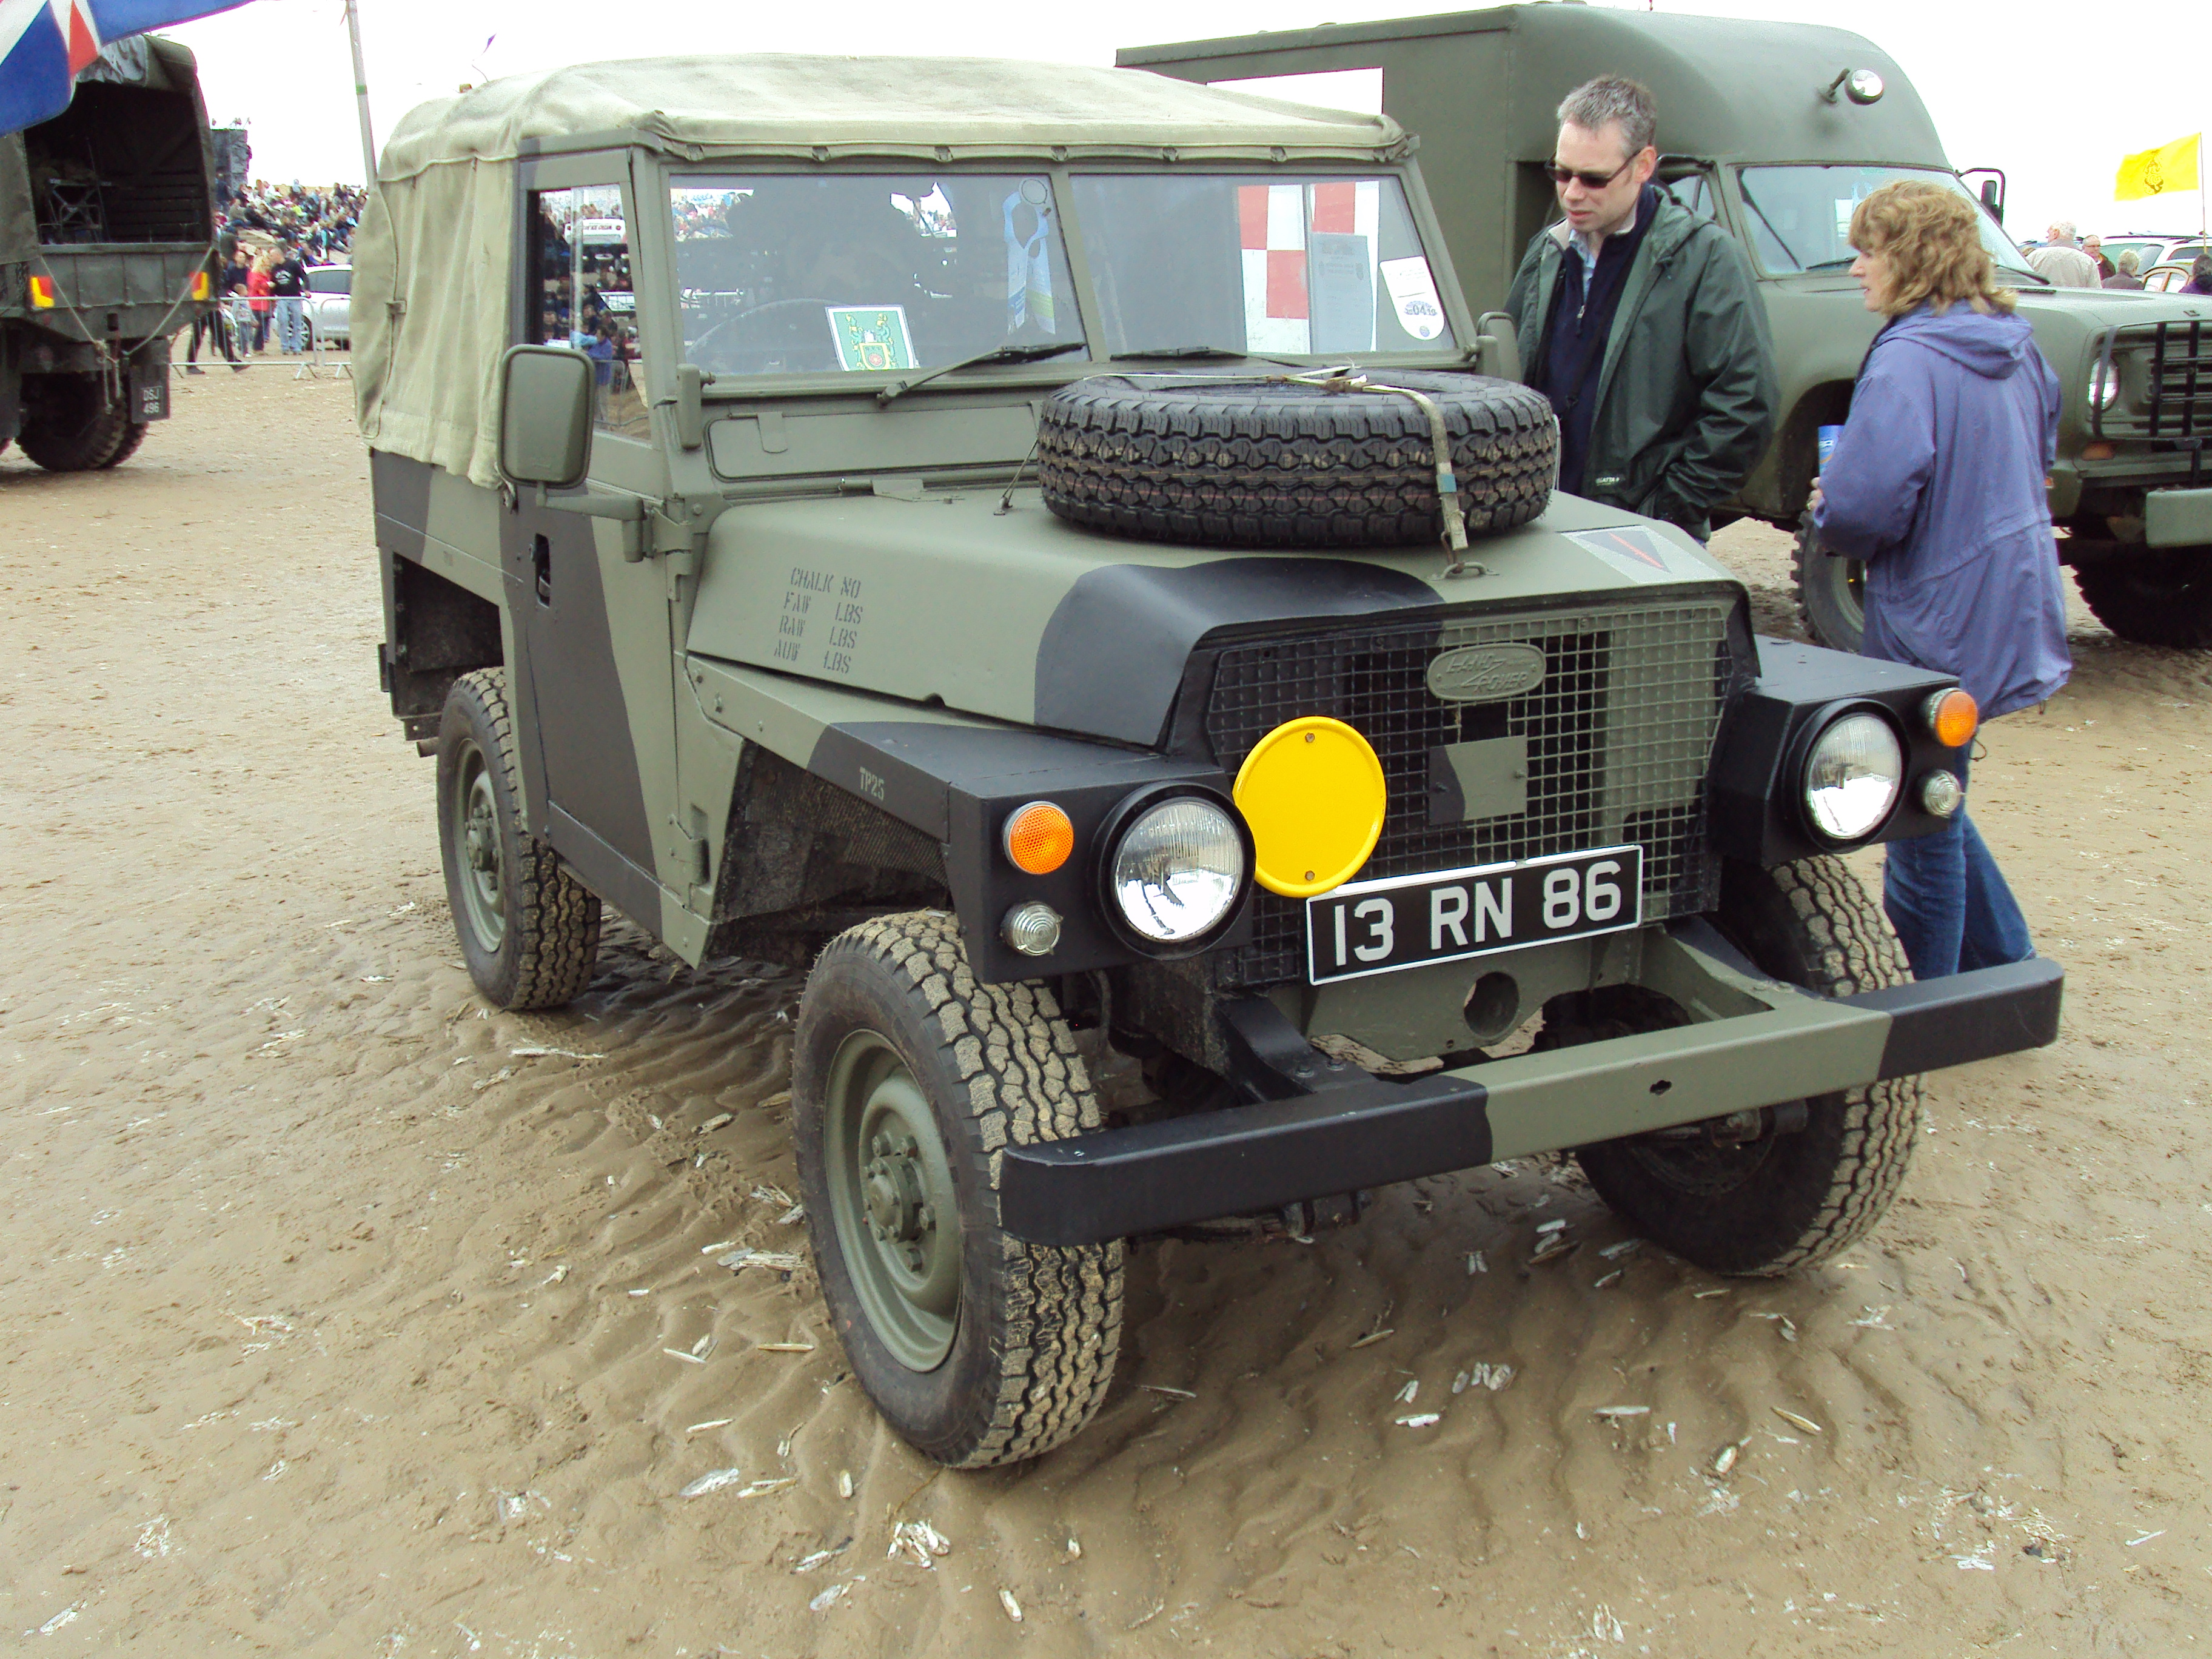 File:Military Land Rover, Southport 2.JPG